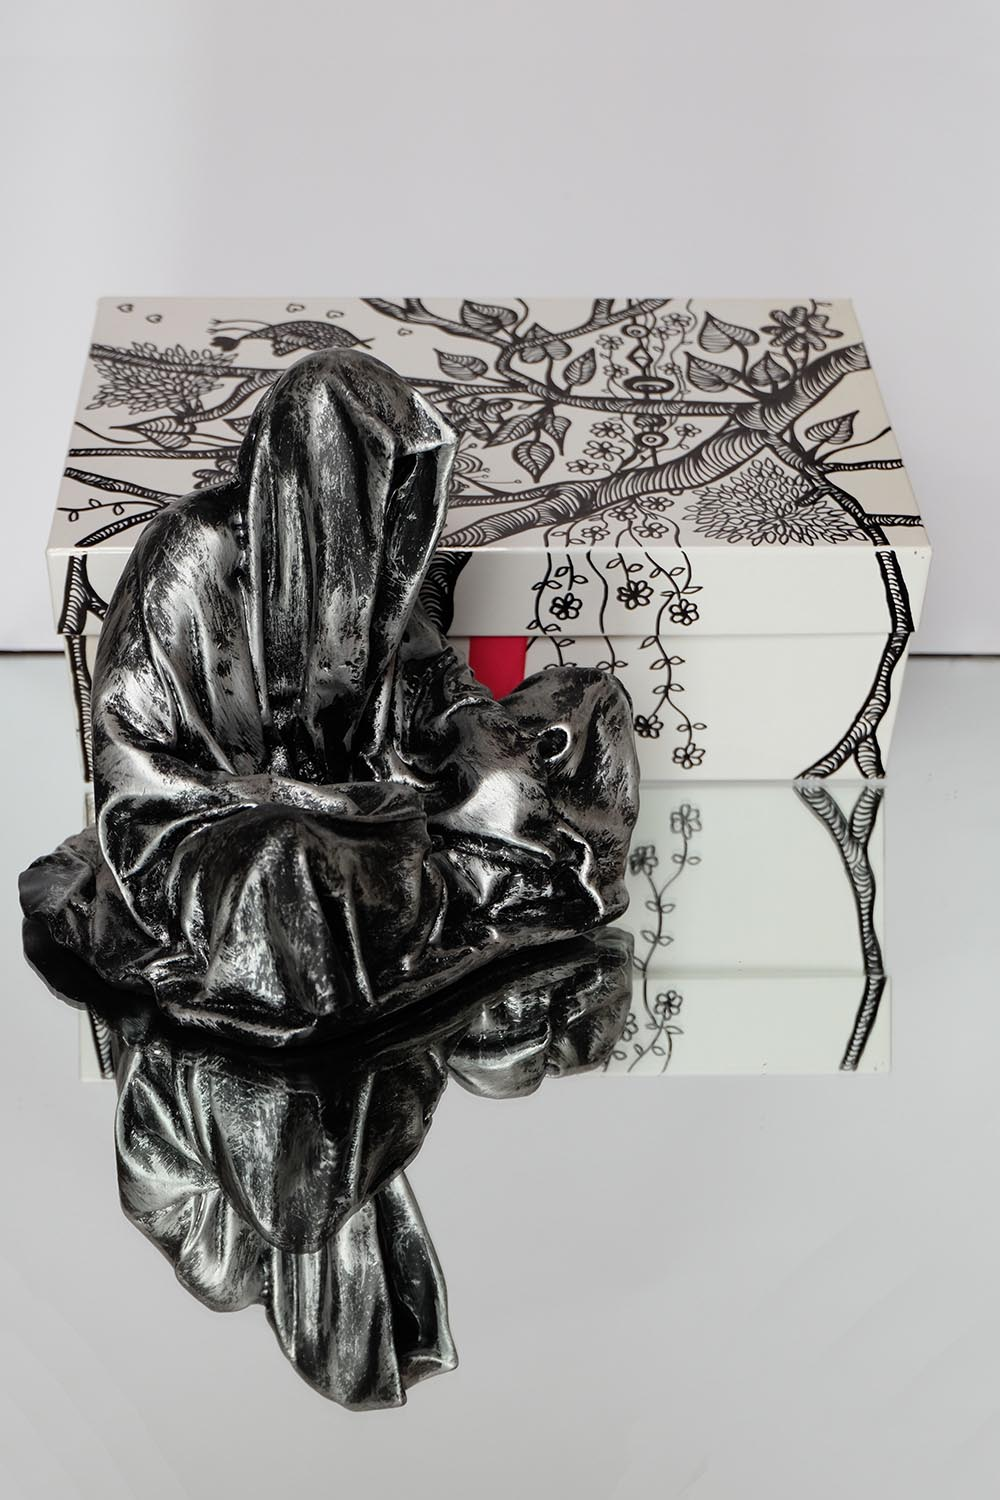 guardians of time manfred kielnhofer pink box rosa rot silvia l lueftenegger contemporary art design sulpture 2971xx